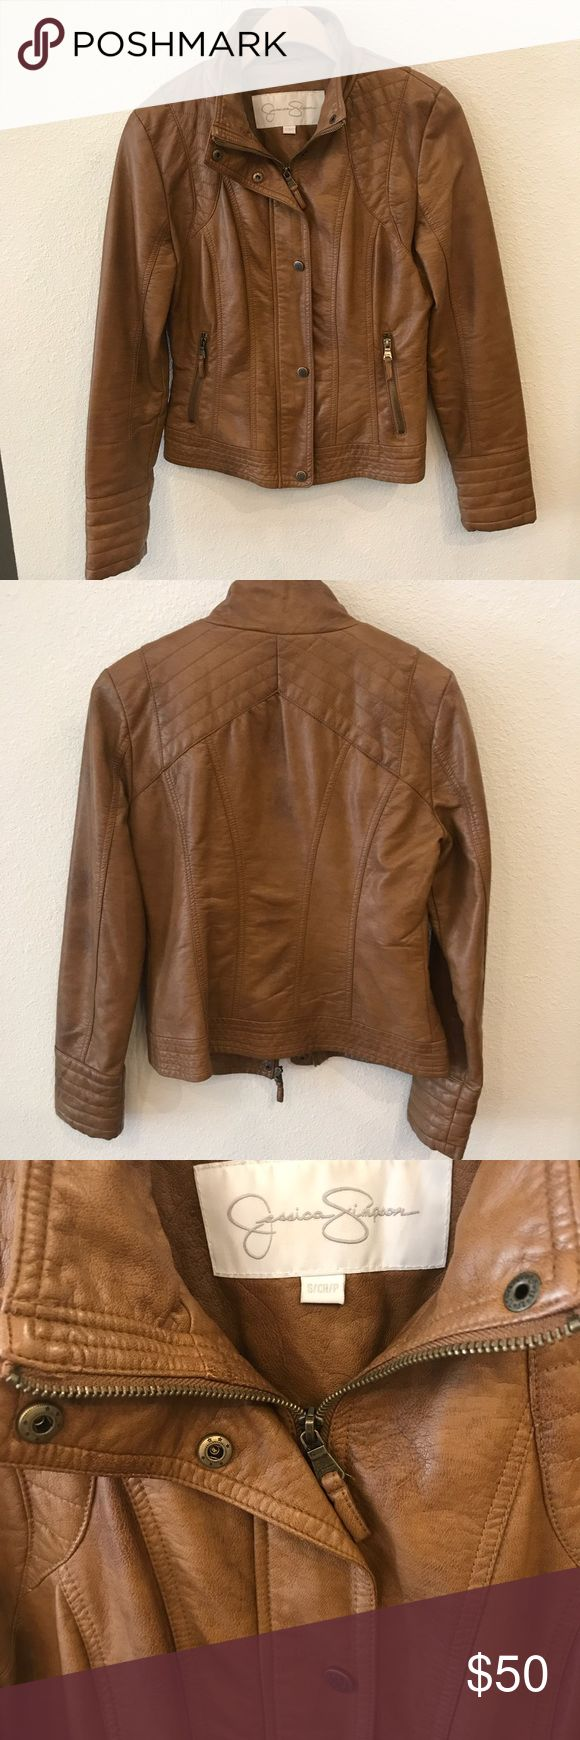 Jessica Simpson Brown Jacket Leather like jacket, only worn once. Very cute for fall! In excellent condition. Jessica Simpson Jackets & Coats